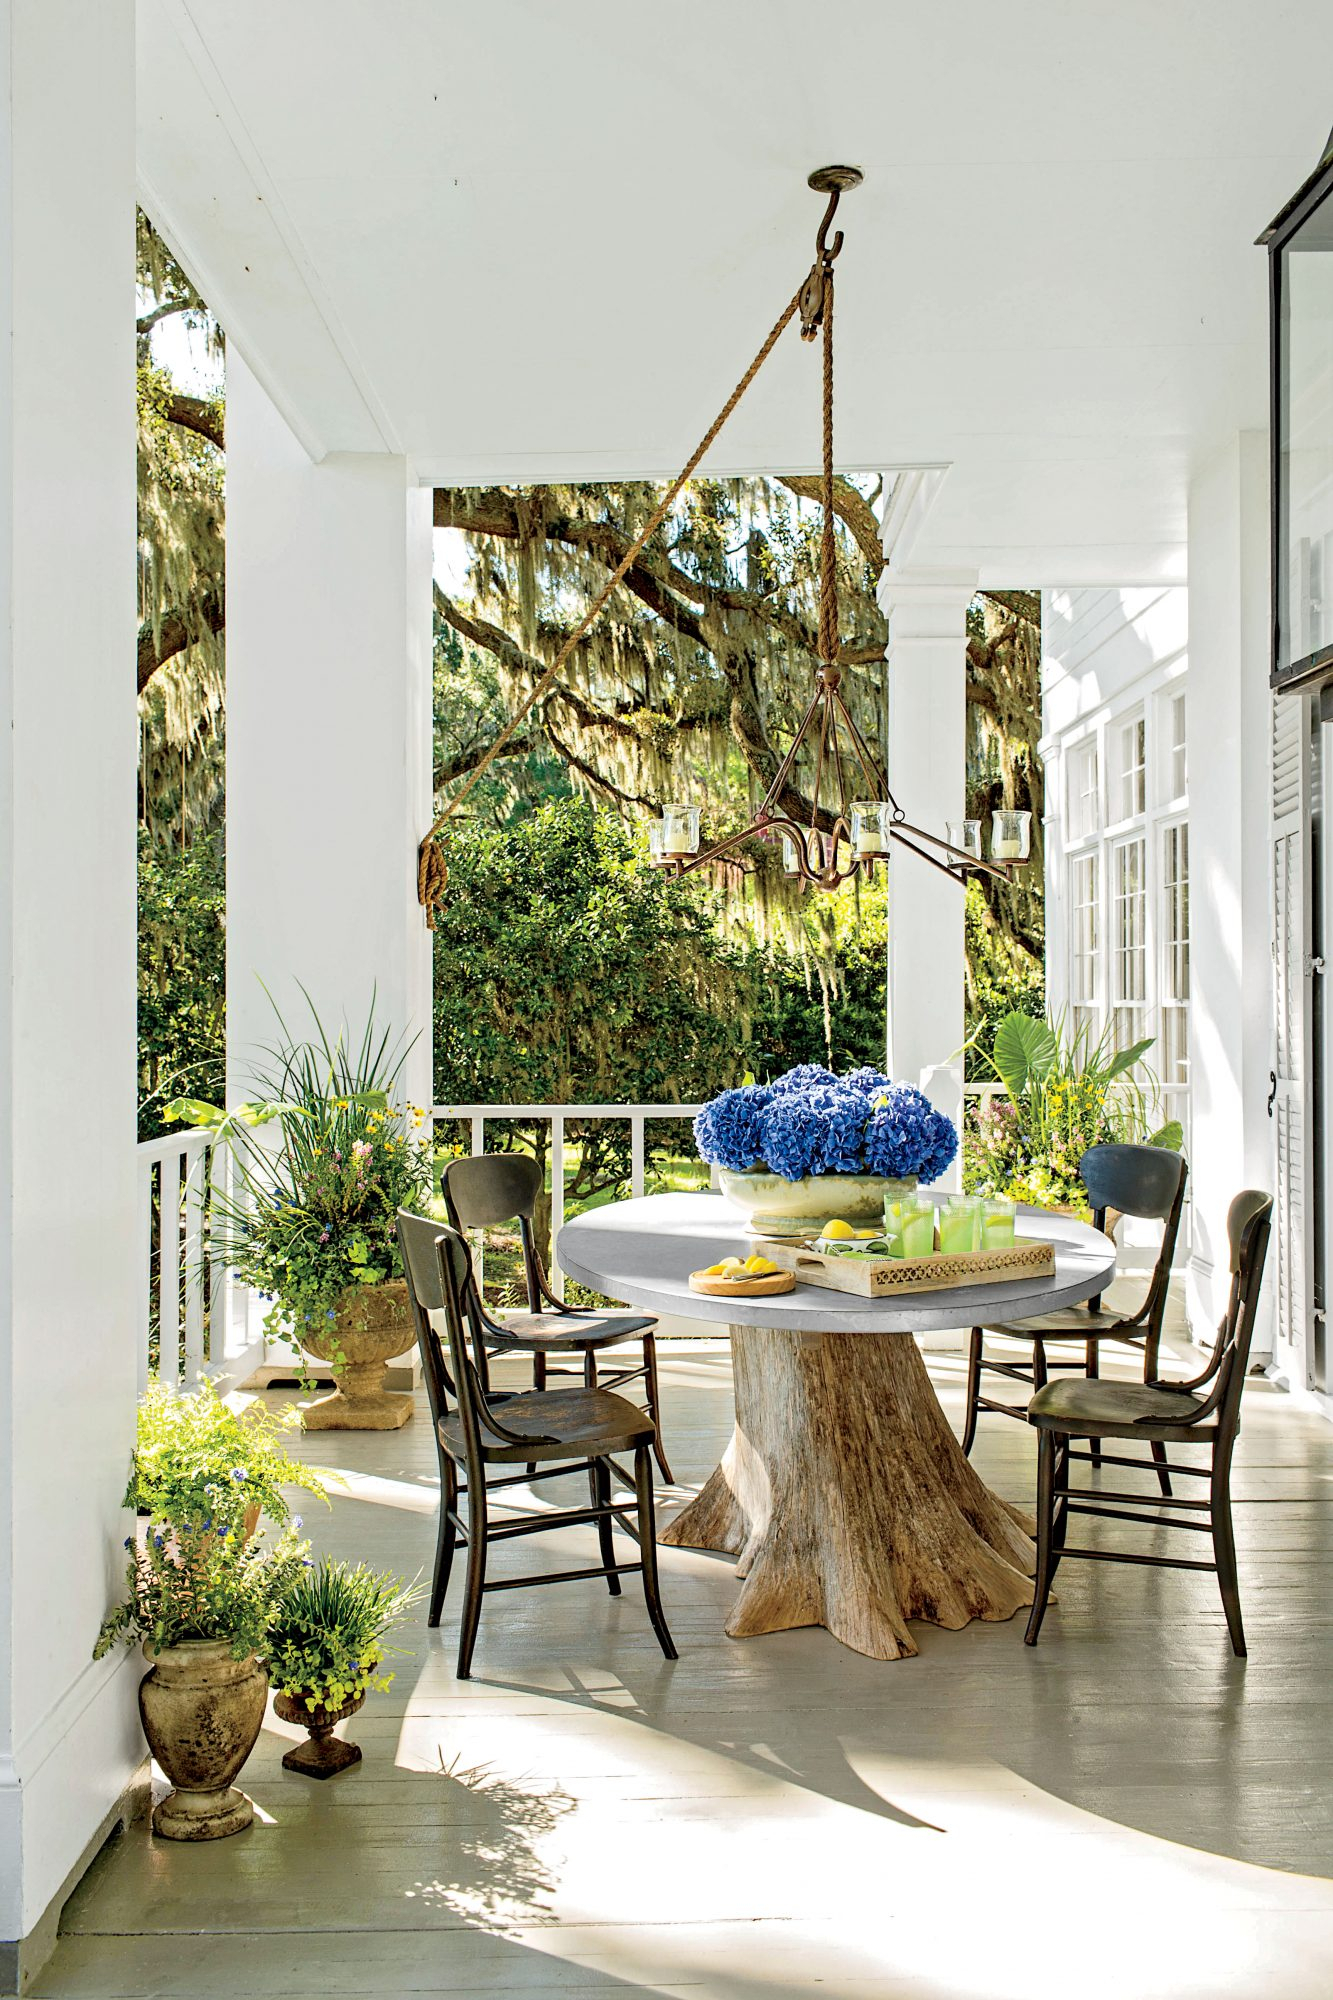 80 Breezy Porches And Patios With Regard To Outdoor Wicker Plastic Half Moon Leaf Shape Porch Swings (View 7 of 25)